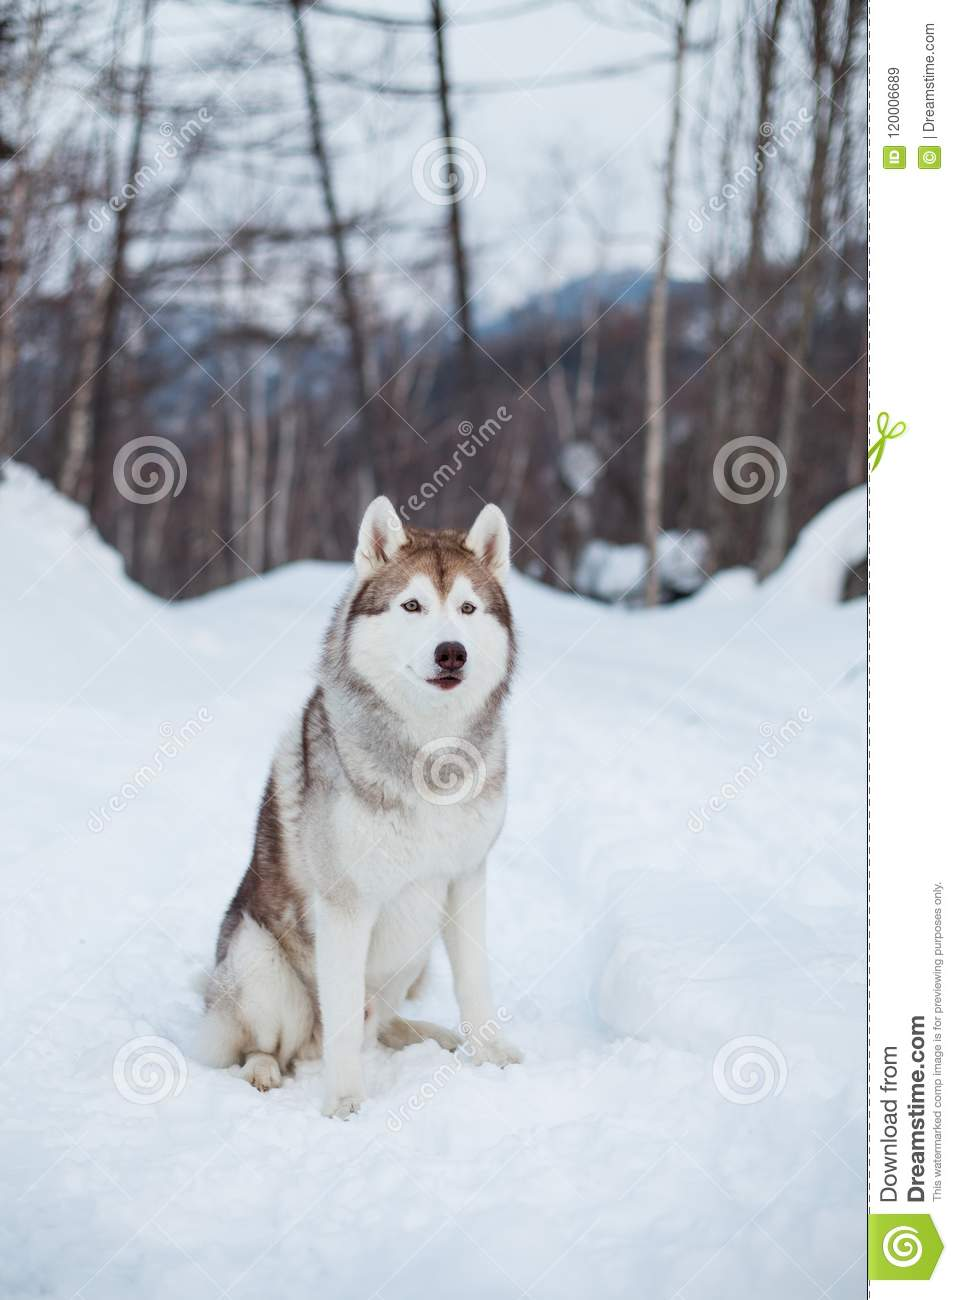 Portrait Of Siberian Husky Dog Sitting On The Snow In Winter Forest